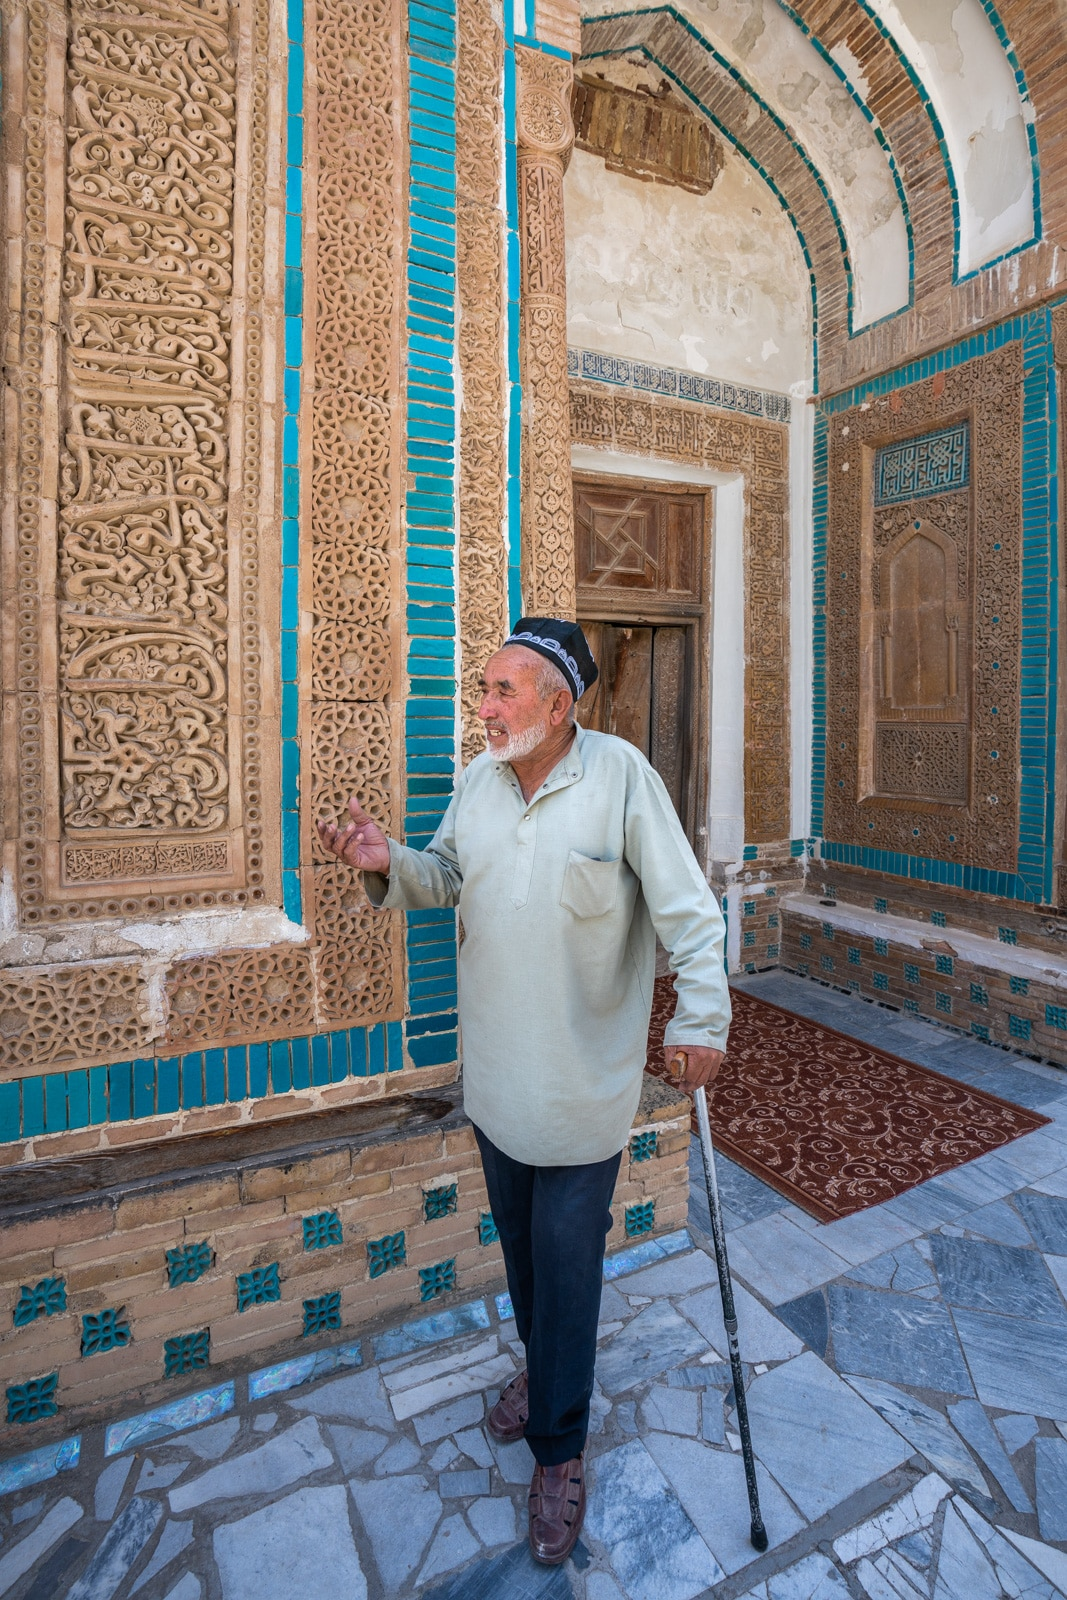 Man in front of mausoleum of Mohammad Bashoro in Mazor i Sharif, Tajikistan